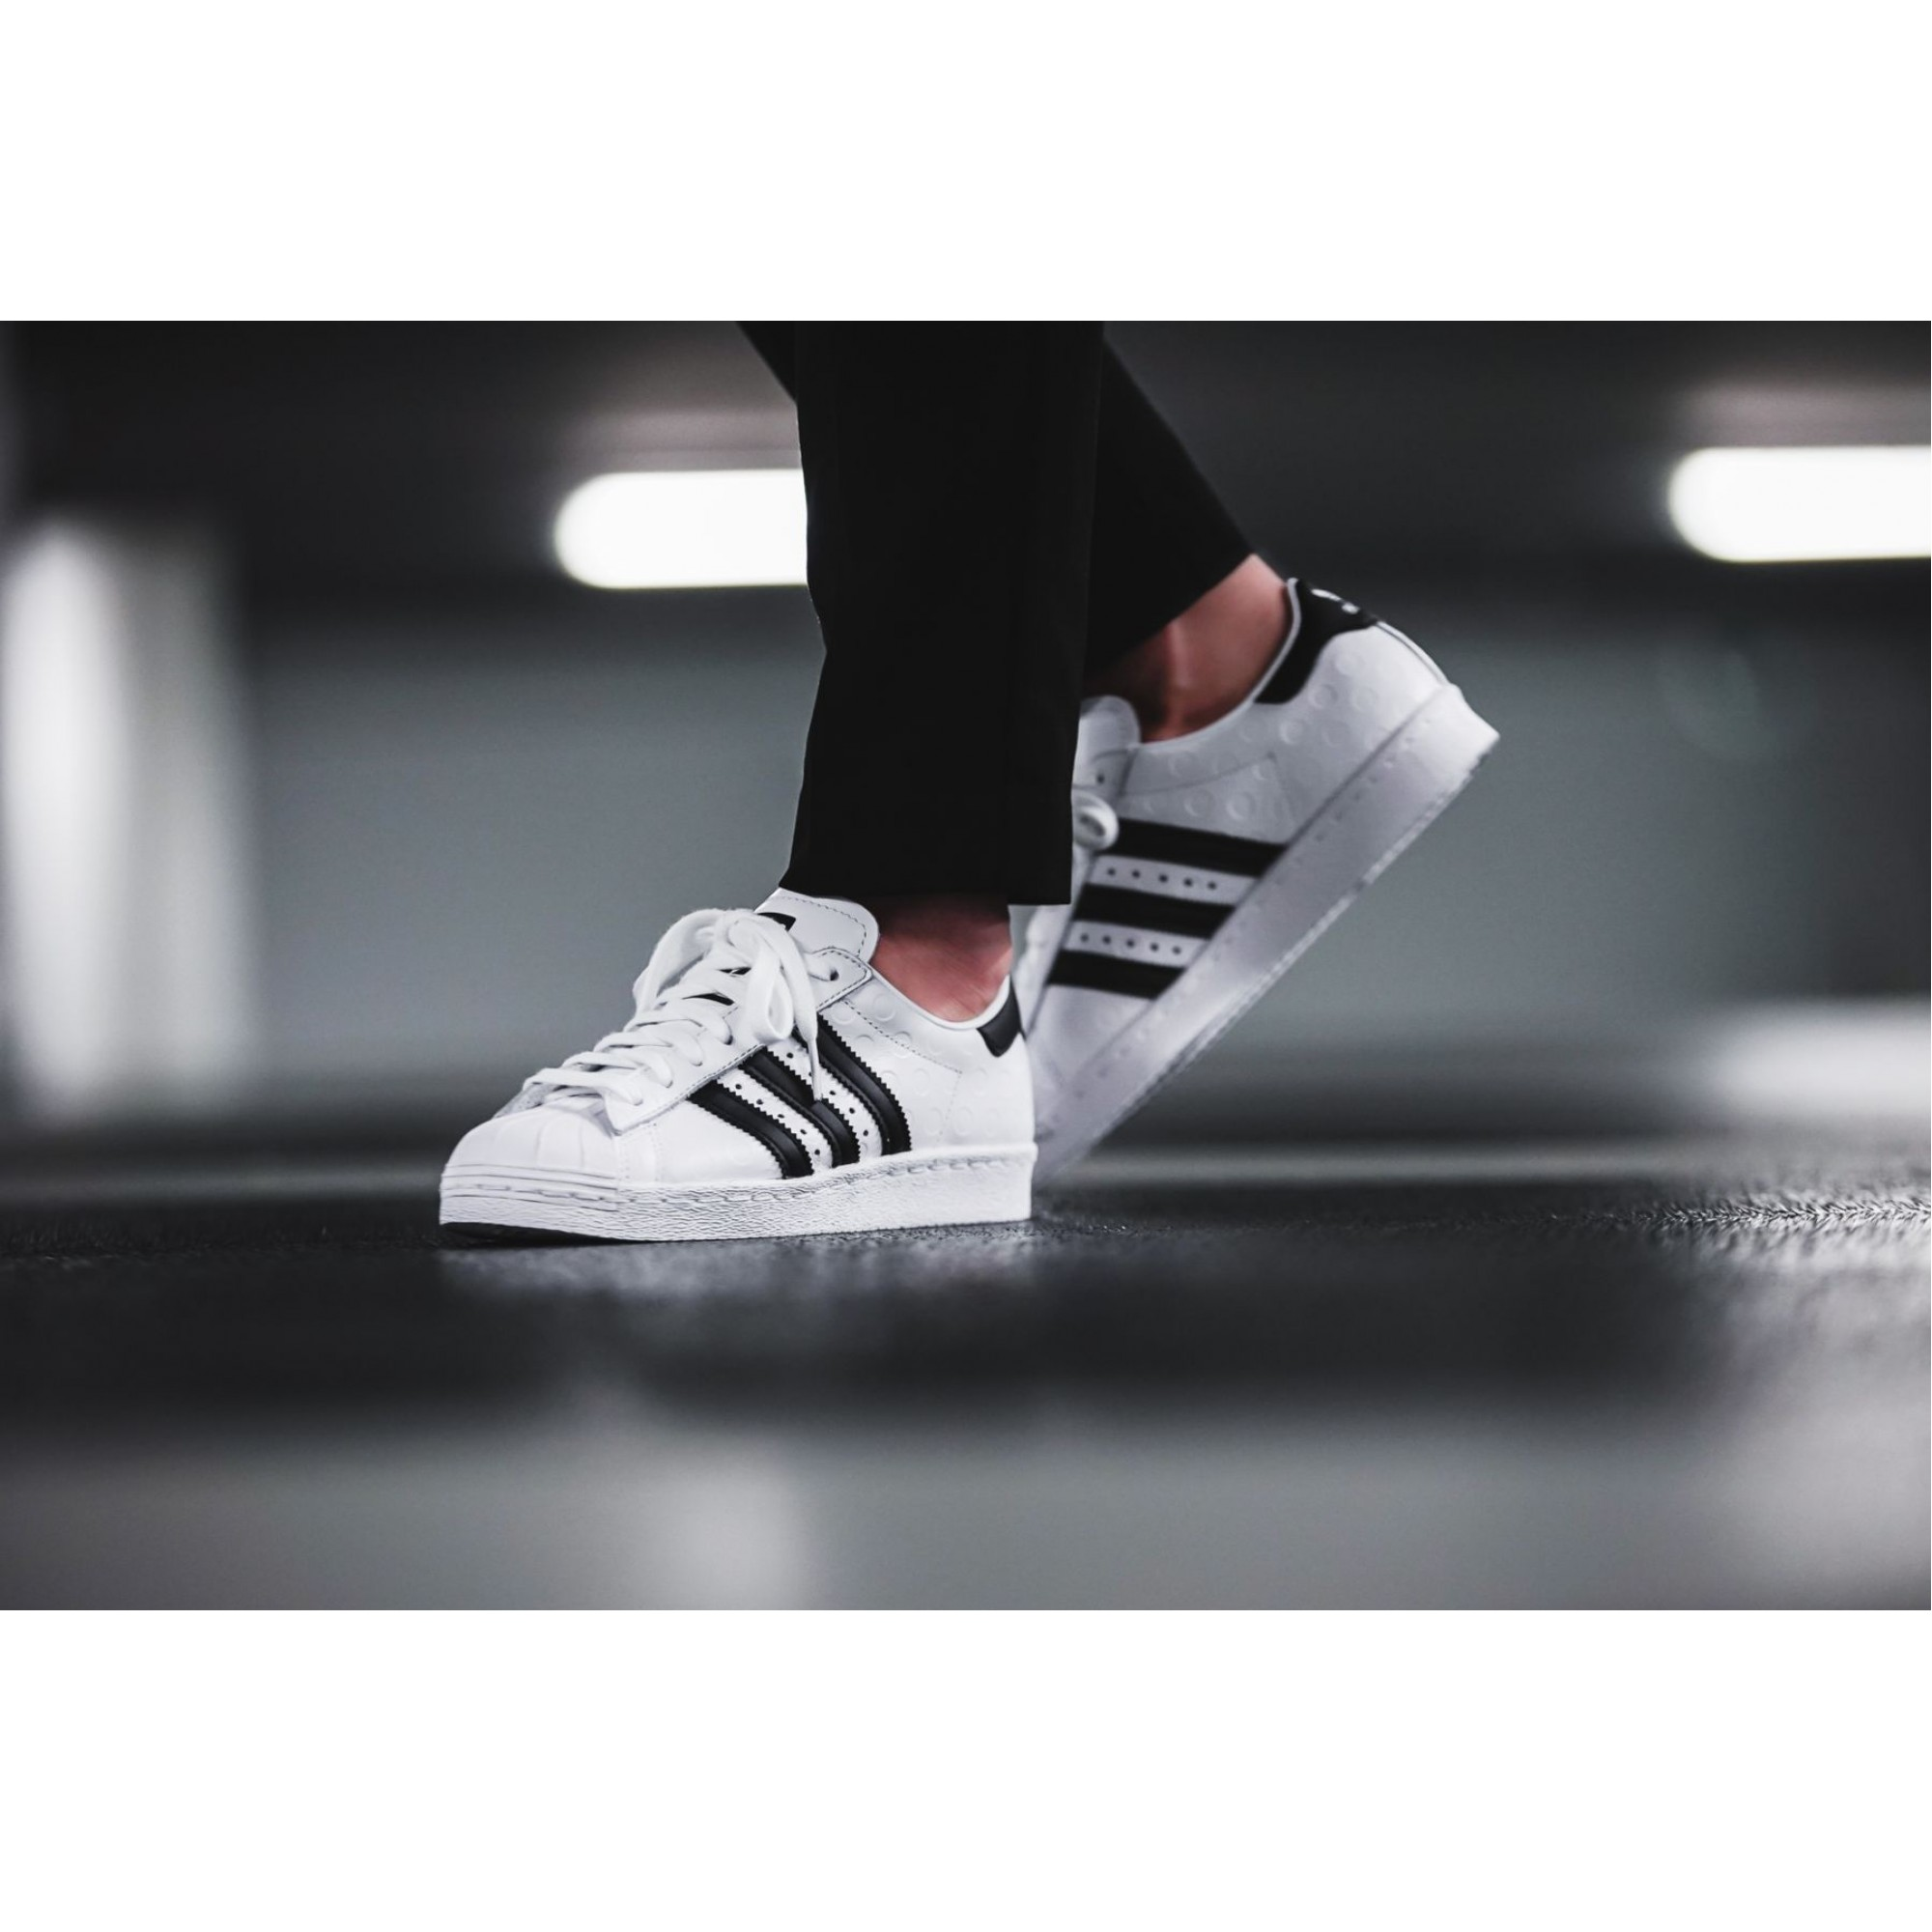 Kid's Adidas Originals Superstar C77154 |Παιδικό Παπούτσι